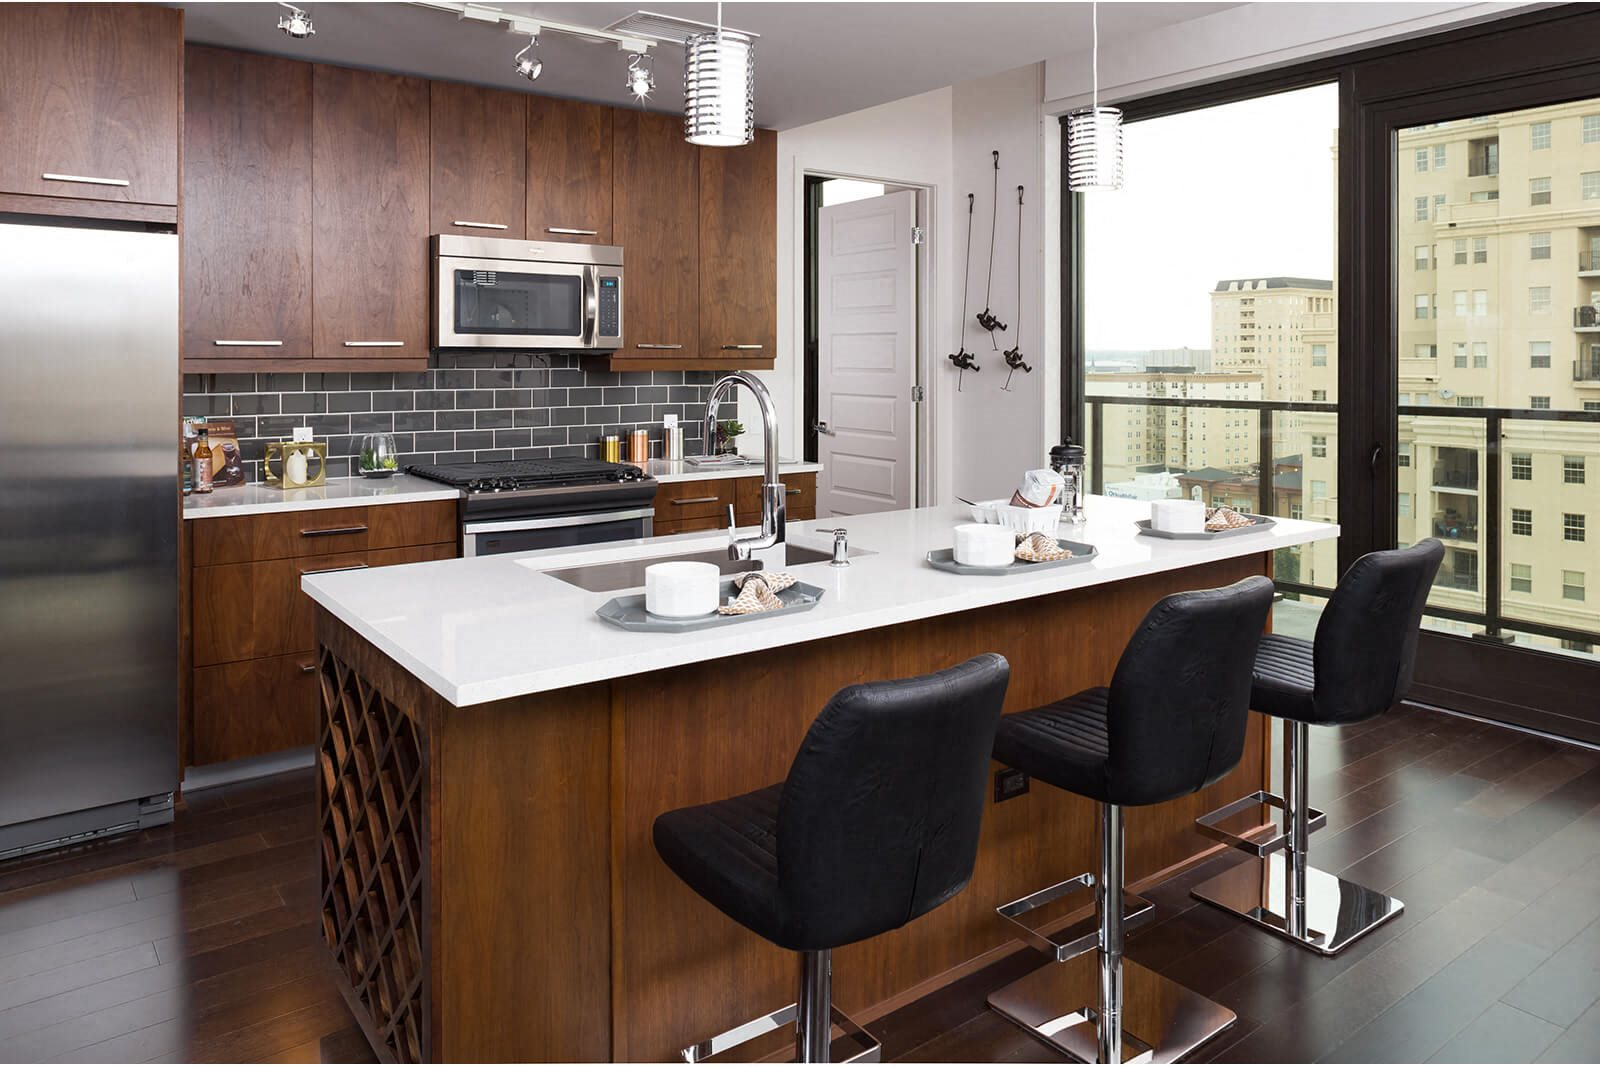 Gloss White, Walnut and Wenge Cabinets Available at 1000 Speer by Windsor, Denver, CO